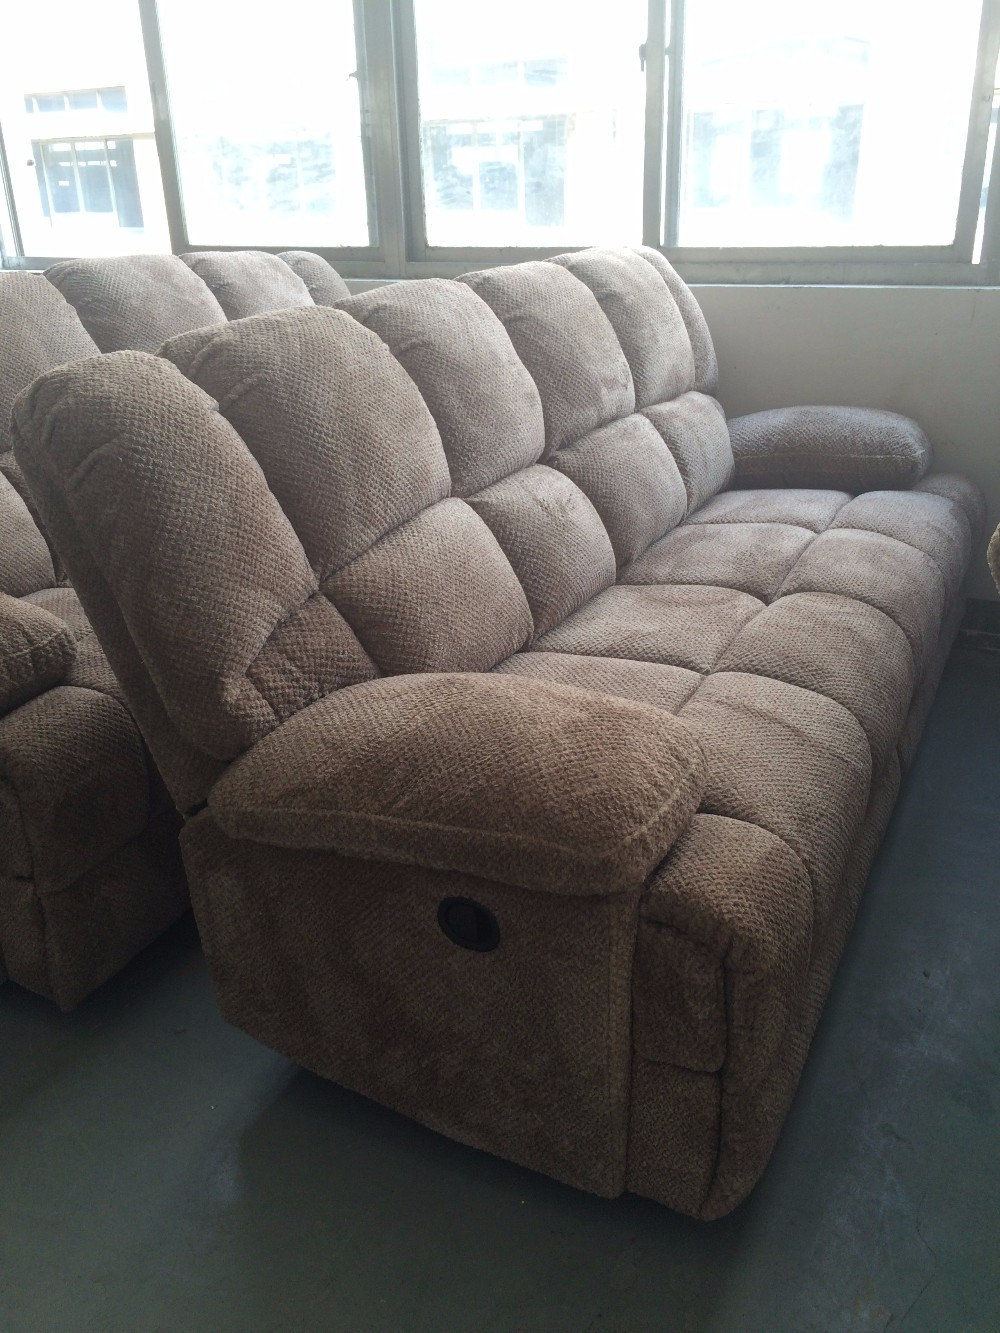 Modern Leisure Reclining Loveseat Cover Motion Loveseat With Console Buy Modern Reclining